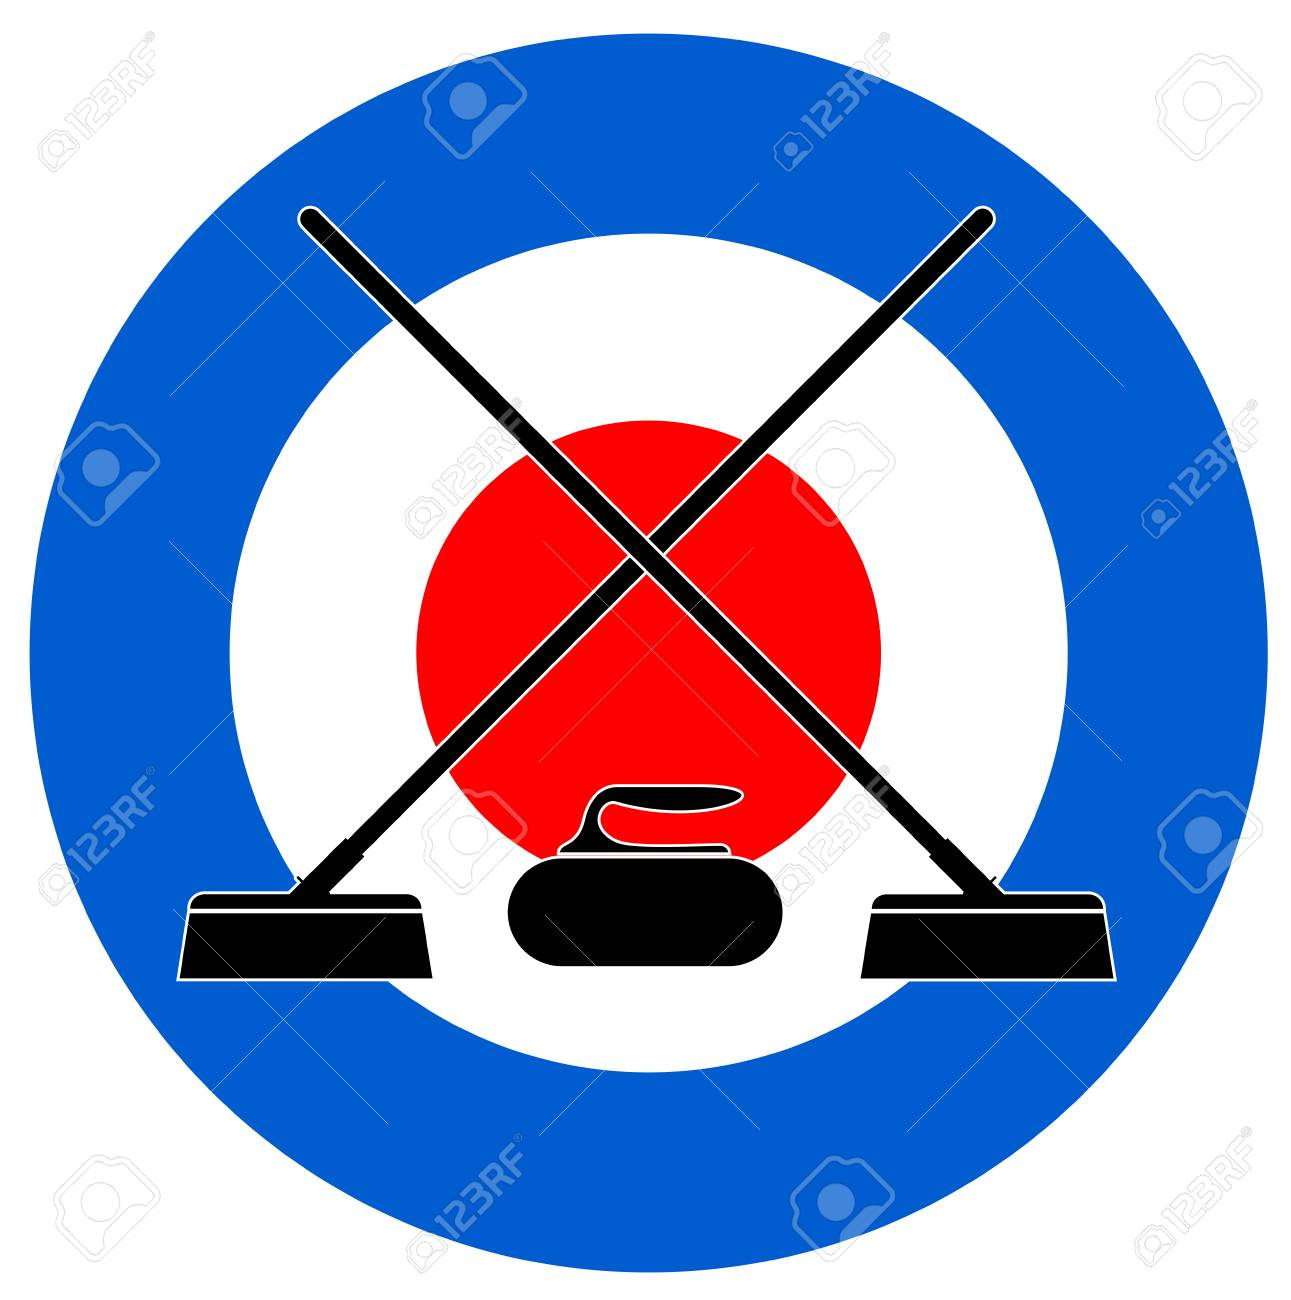 Brooms and stone for curling on Curling House vector.